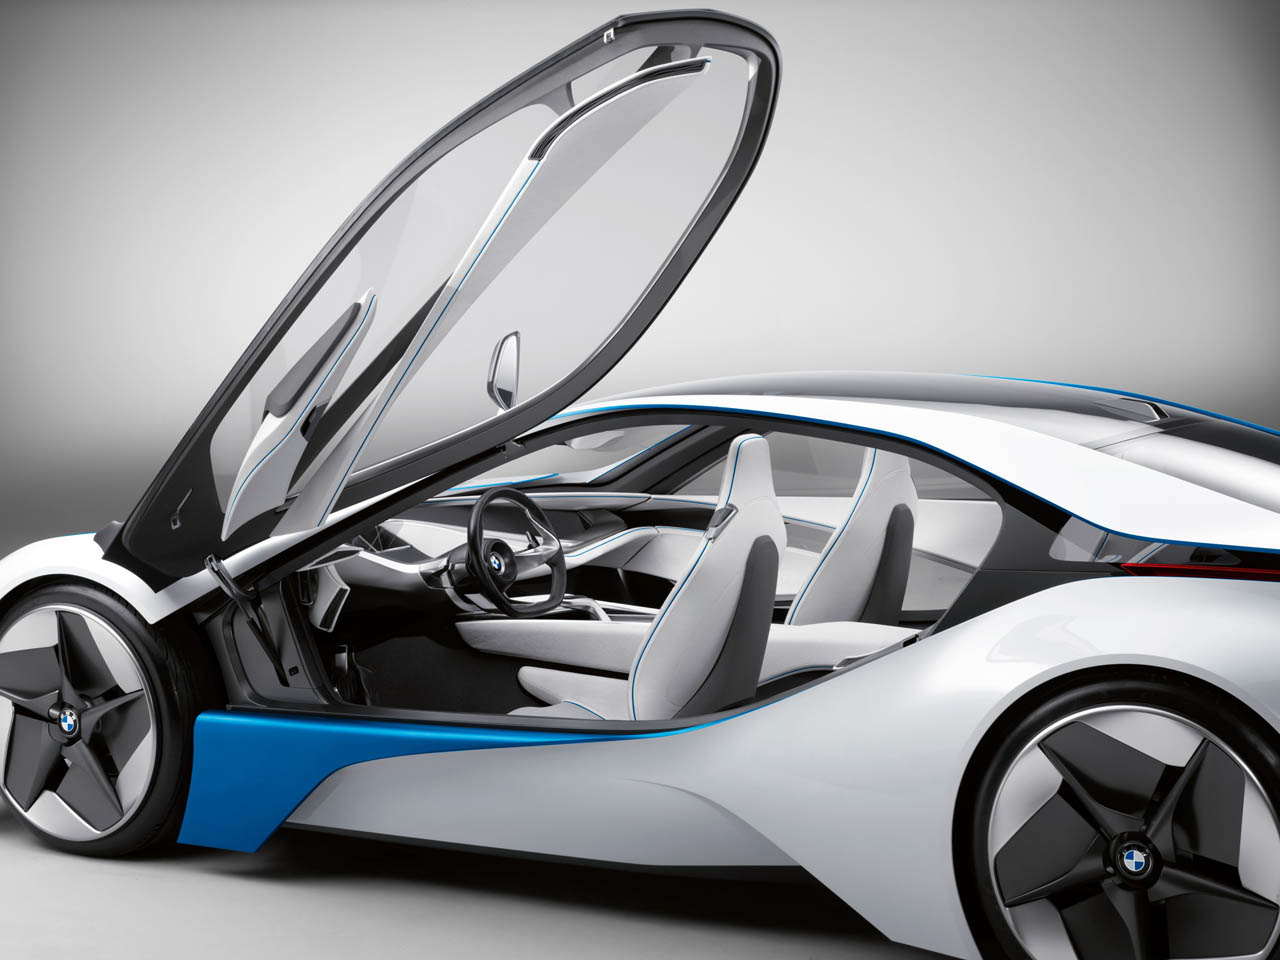 Opening the door - BMW Vision Efficient